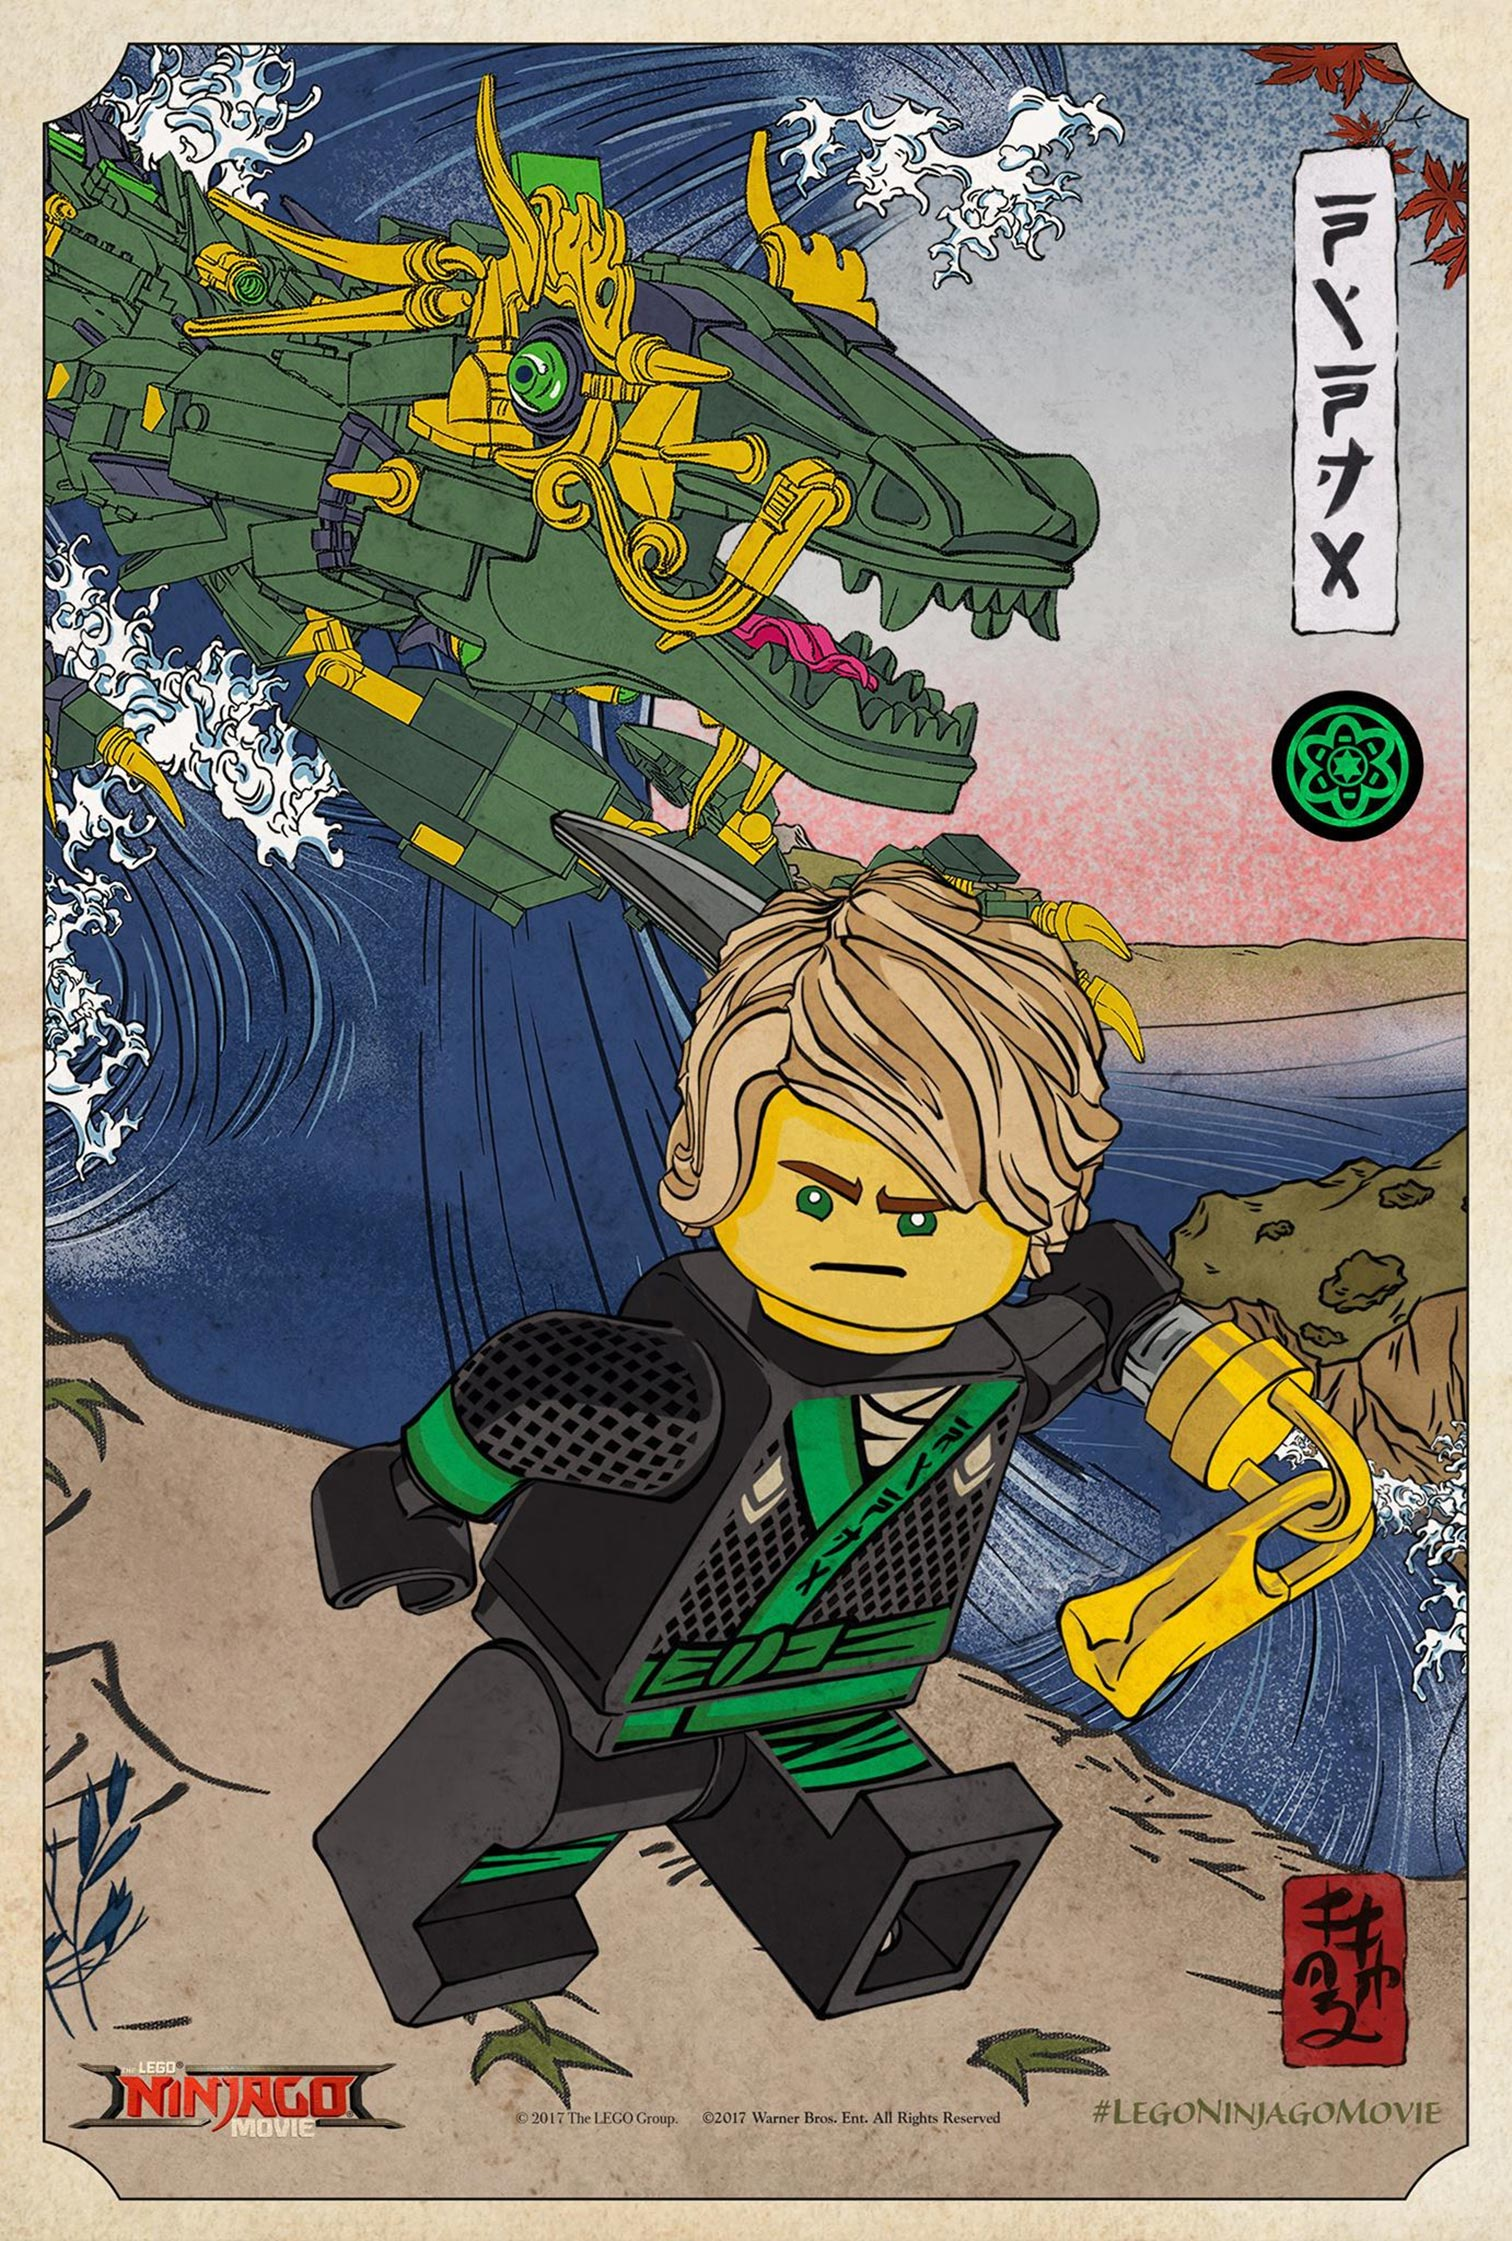 The Lego Ninjago Movie Poster #11